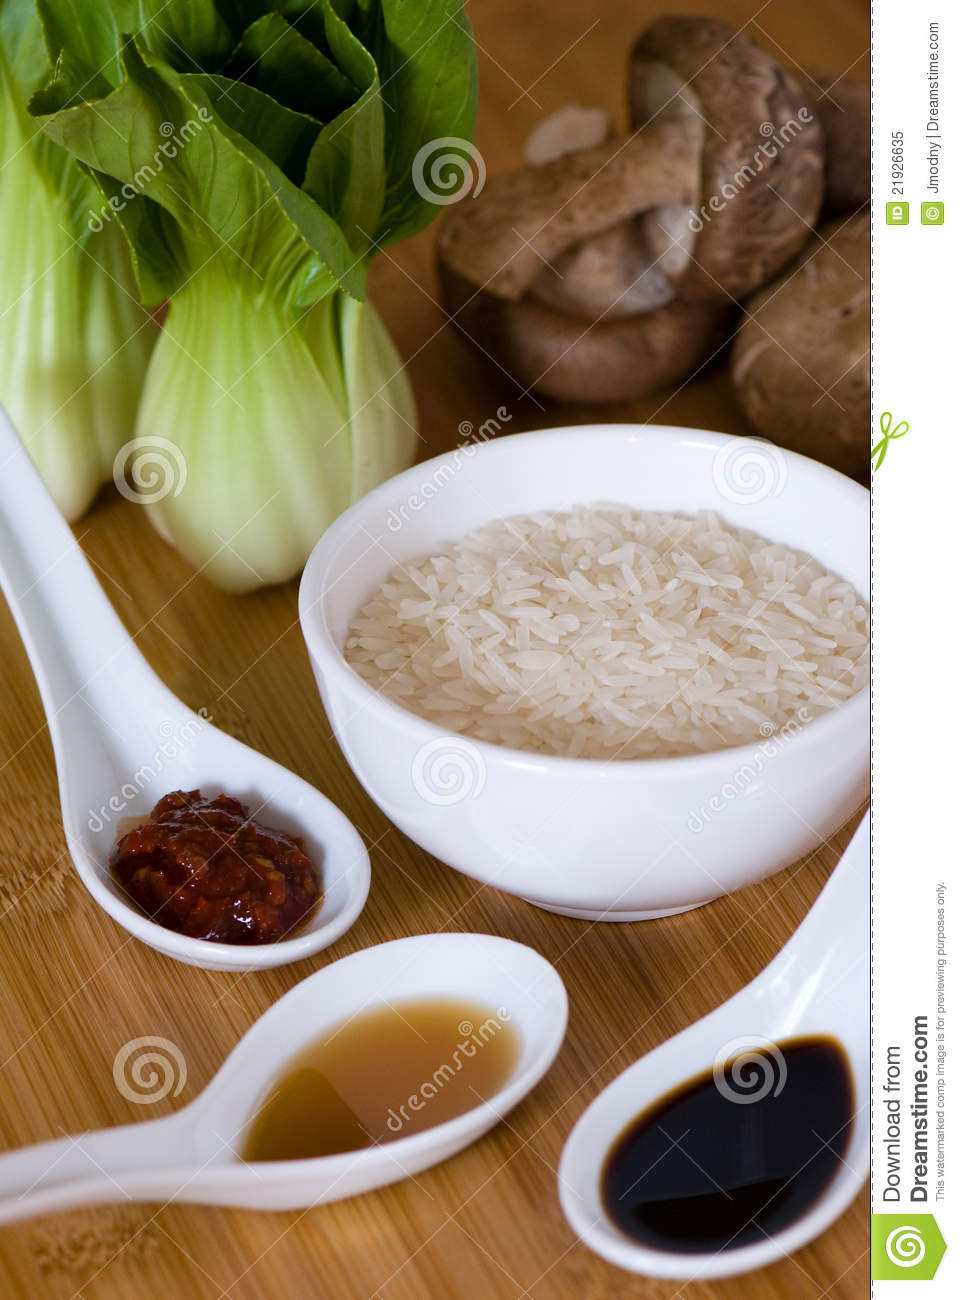 Asian food ingredients royalty free stock photo image for Asian cuisine ingredients